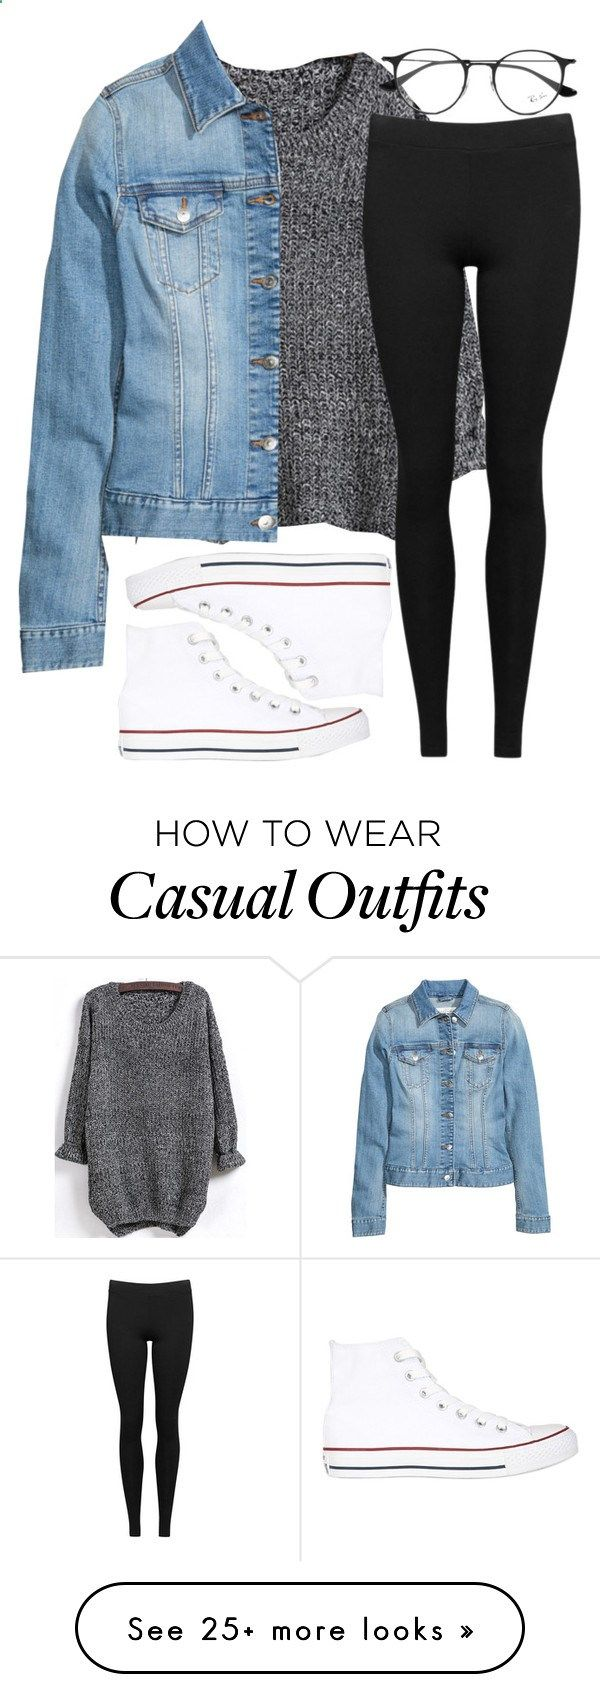 6d3ed1806053 Casual Outfit by candice04 on Polyvore featuring Converse